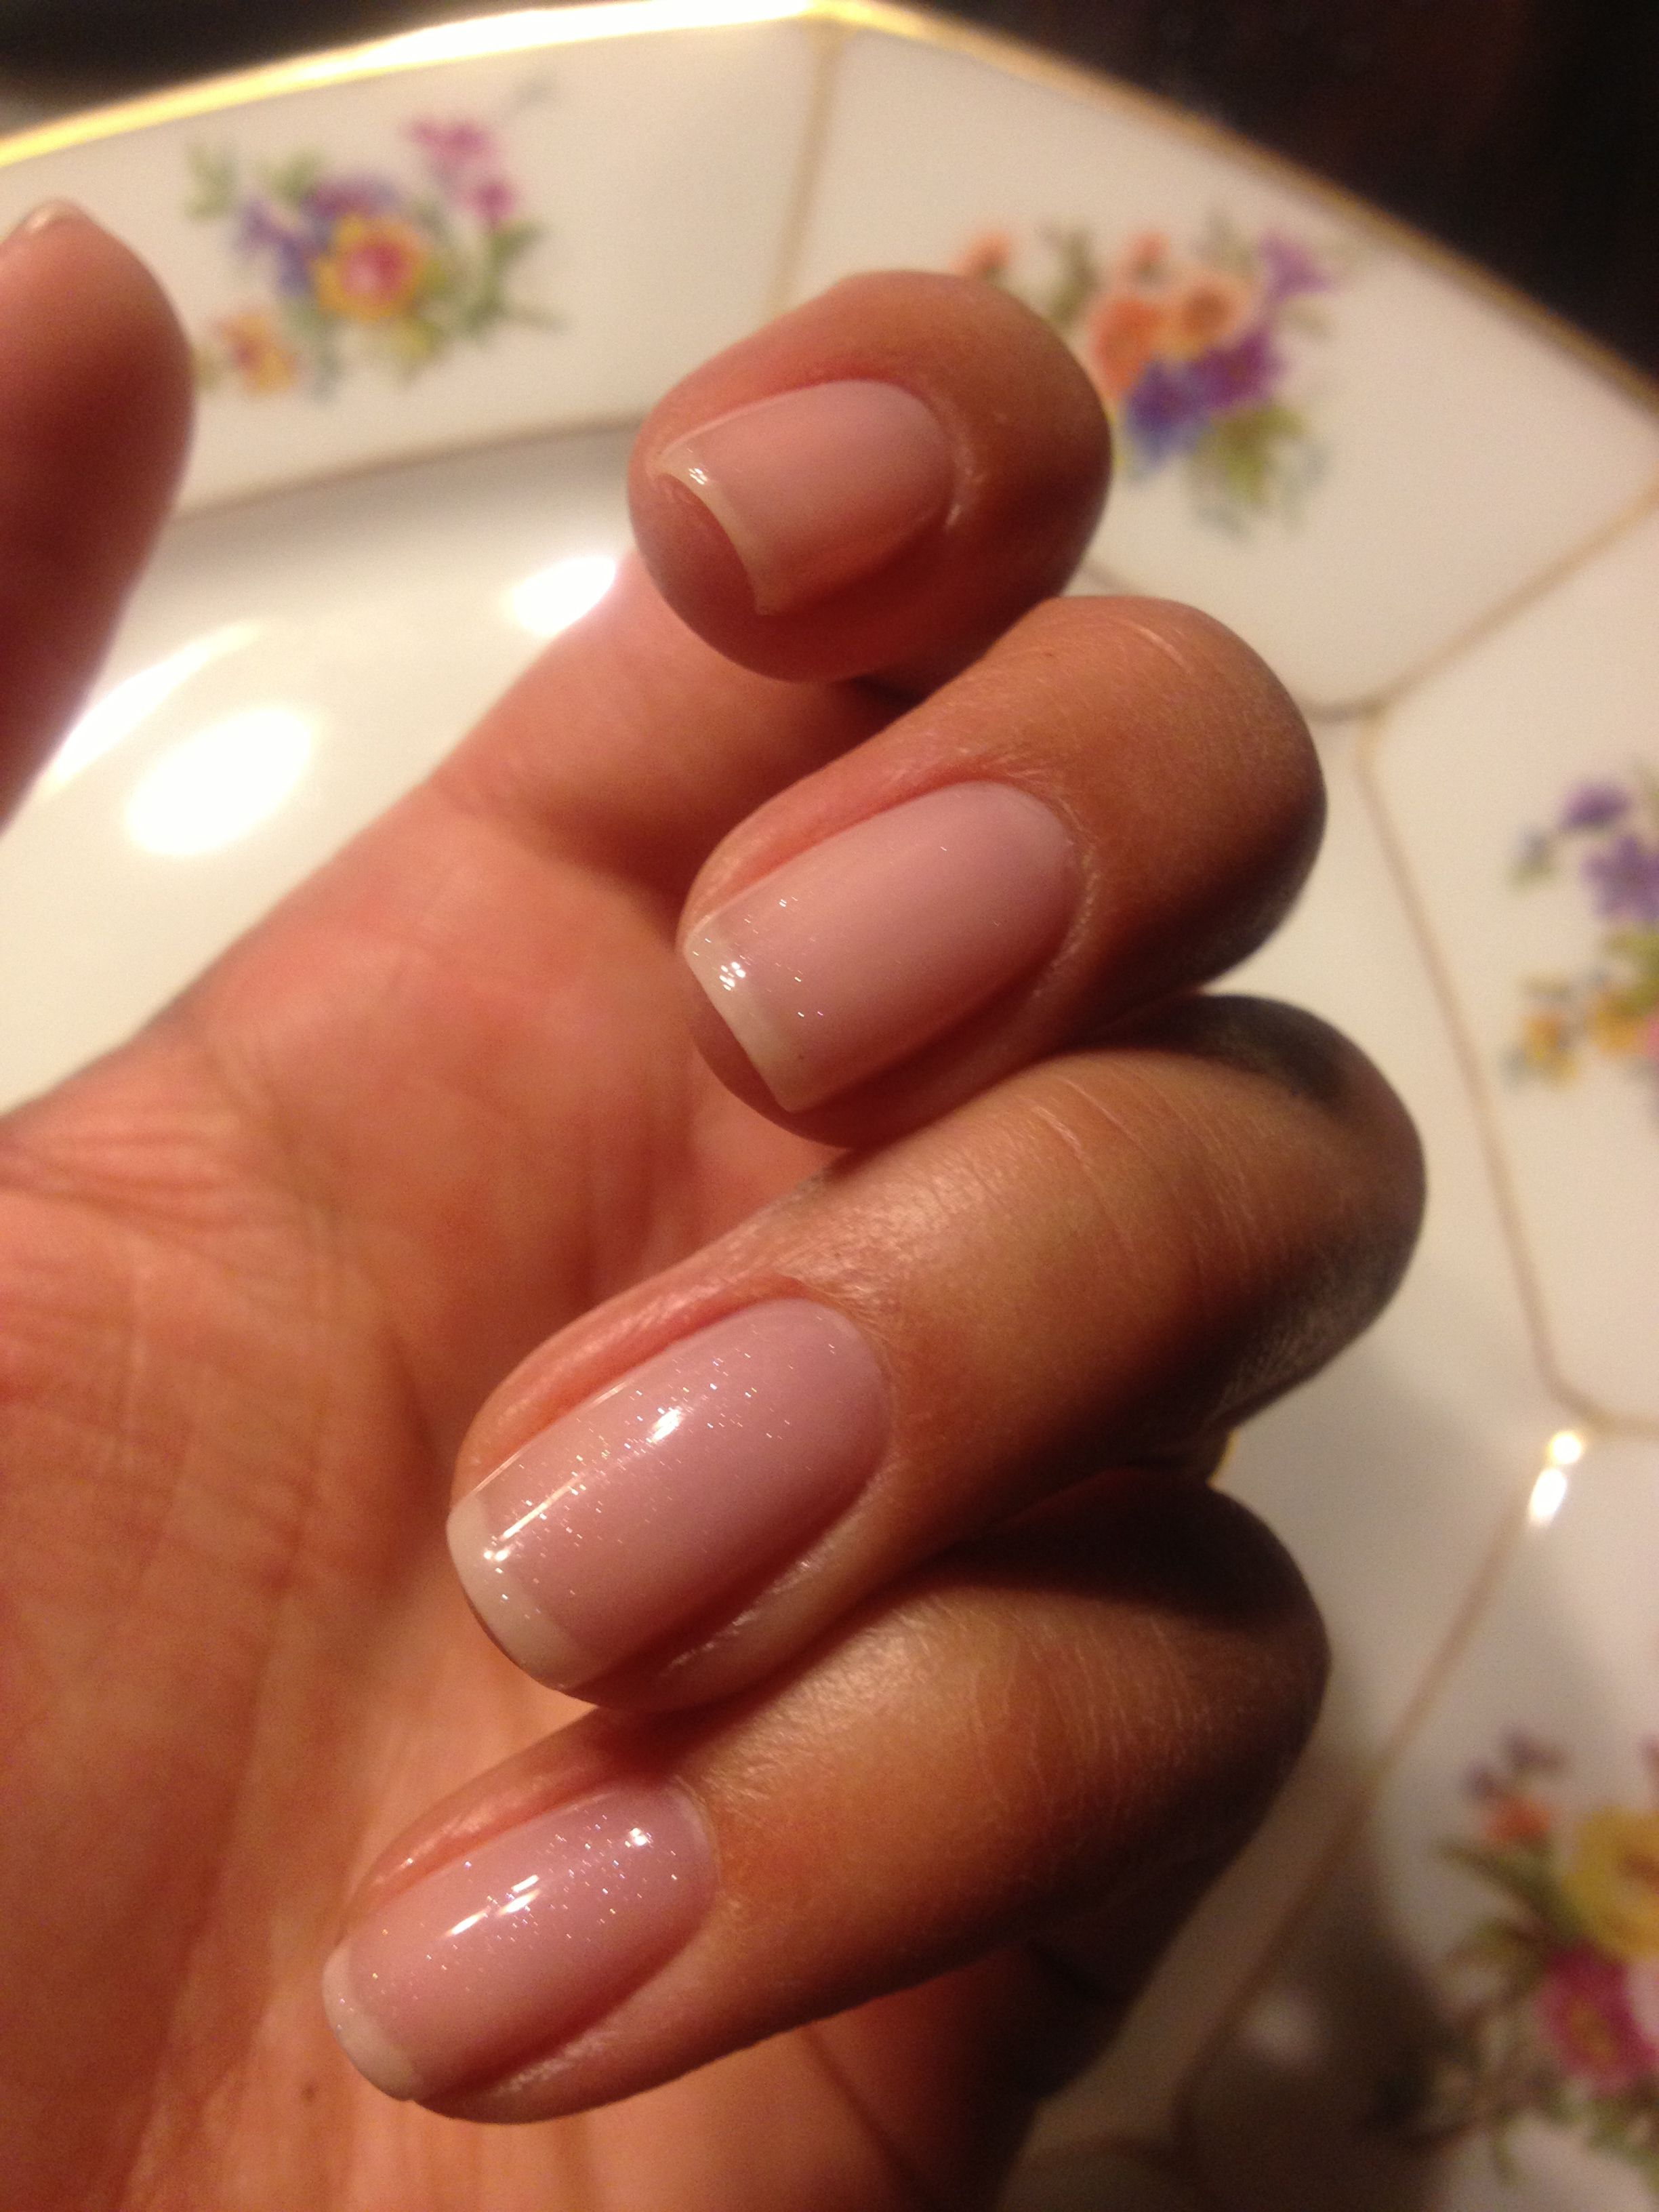 Pin By Jennifer Tritt Bennett On Exclusive Beauty By Jennifer All My Work Natural Acrylic Nails Gel Overlay Nails Natural Gel Nails